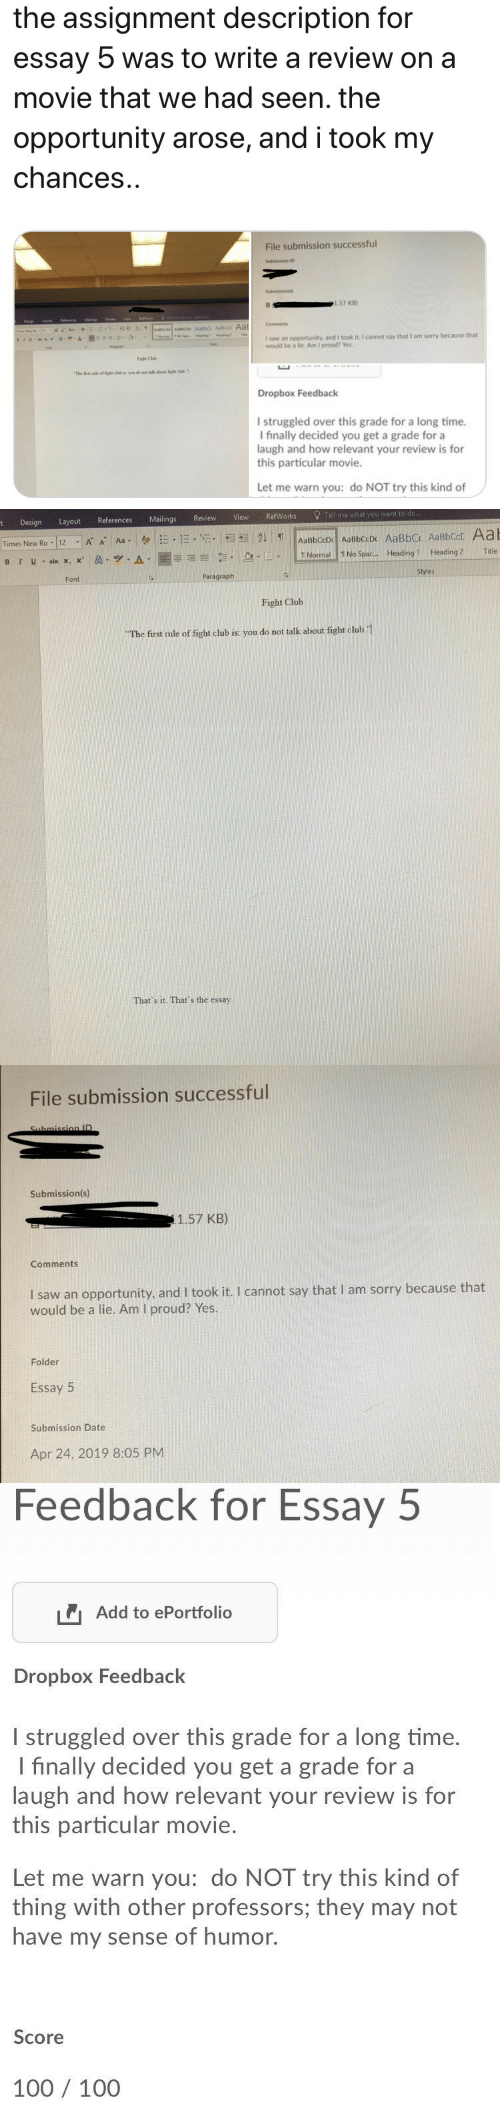 You Get A: the assignment description for  essay  was to write a review on a  movie that we had seen. the  opportunity arose, and i took my  chances  File submission successful  Submissions  1.57 KB)  Comments  I saw an opportunity, and I took it. I cannot say that I am sorry because that  would be a lie. Am I proud? Yes.  Fand  Faght Club  The fist rale of ight club in: you do not talk about figh chb 1  Dropbox Feedback  I struggled over this grade for a long time.  I finally decided you get a grade for a  laugh and how relevant your review is for  this particular movie.  Let me warn you: do NOT try this kind of   erences Mailings Review View RefWorks Tell me what you want to do  t Design Layout Refe  || TNormal!!NoSpac  A-1圜喜毛引 .le! . el-  Headingl. Heading2  Title  Styles  Paragraph  Font  Fight Club  The first rule of fight club is: you do not talk about fight chub.1  That's it. That's the essay   File submission successful  Submission(s)  1.57 KB)  Comments  I saw an opportunity, and I took it. I cannot say that I am sorry because that  would be a lie. Am I proud? Yes.  Folder  Essay 5  Submission Date  Apr 24, 2019 8:05 PM   Feedback for Essay  5  Add to ePortfolio  Dropbox Feedback  l struggled over this grade for a long time.  I finally decided you get a grade for a  laugh and how relevant your review is for  this particular movie.  Let me warn you: do NOT try this kind of  thing with other professors; they may not  have my sense of humor.  Score  100 100